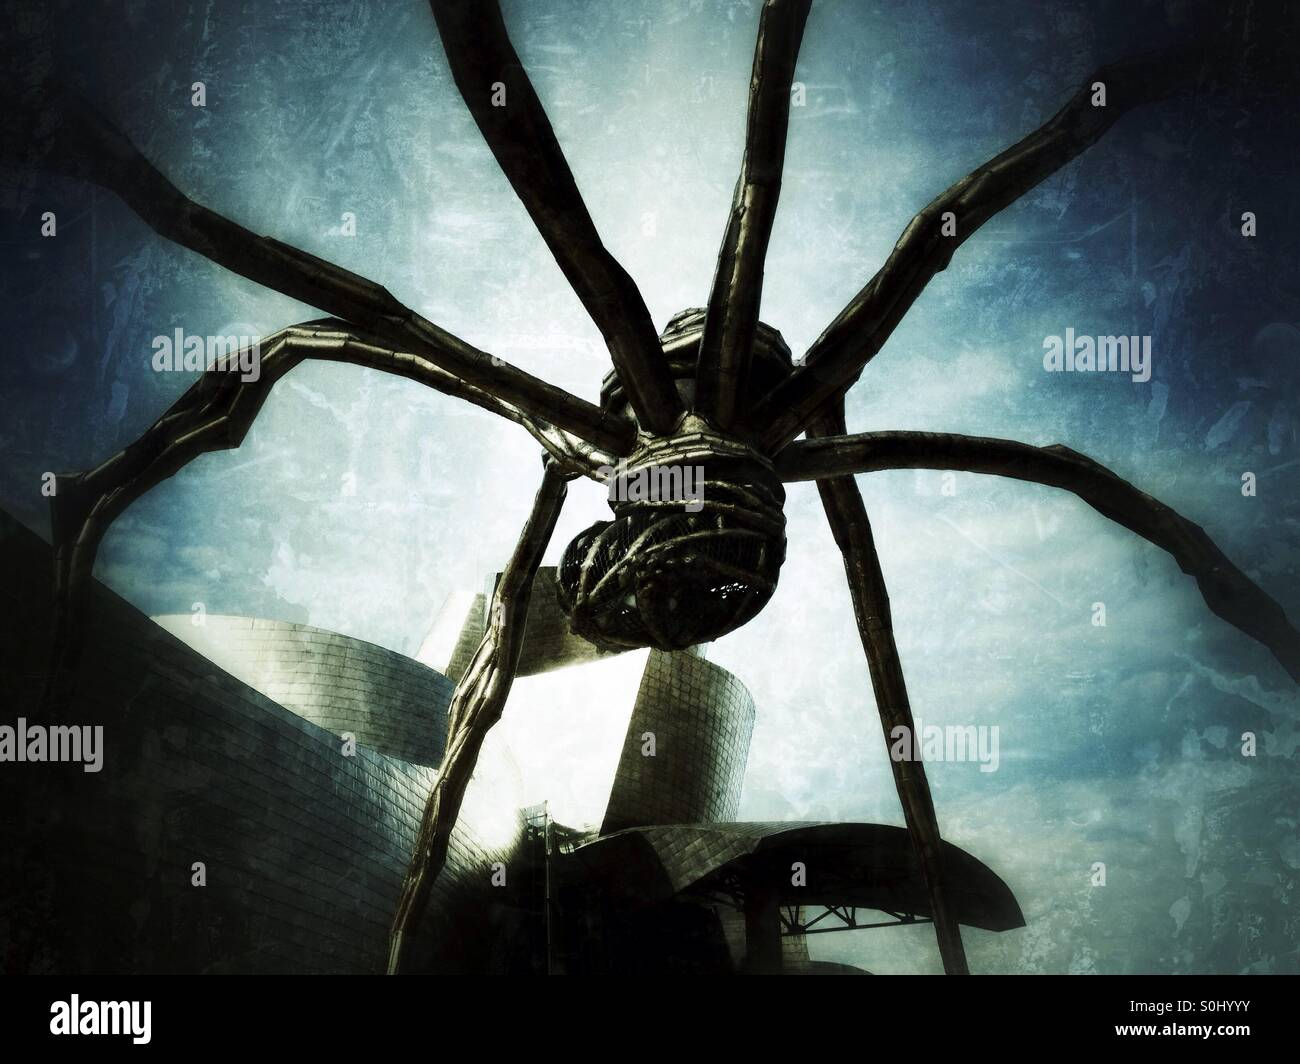 Detail of Spider sculpture and the Guggenheim Museum in Bilbao, Spain - Stock Image